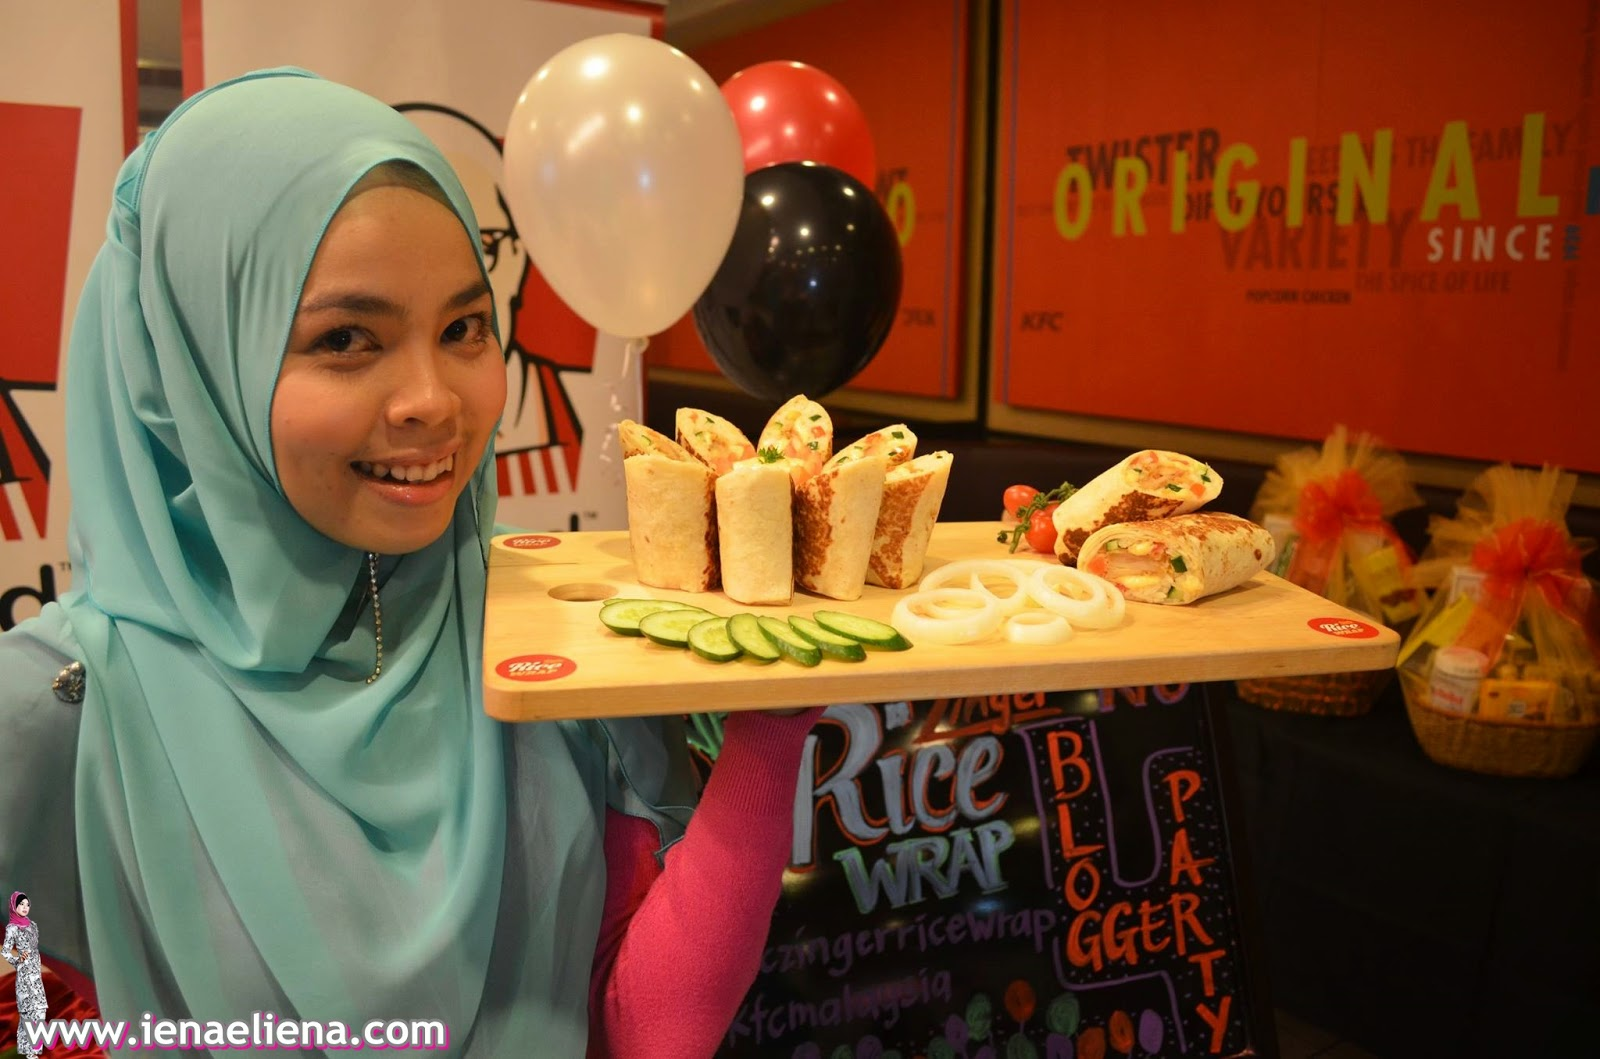 Model Muslimah KFC Zinger Rice Wrap